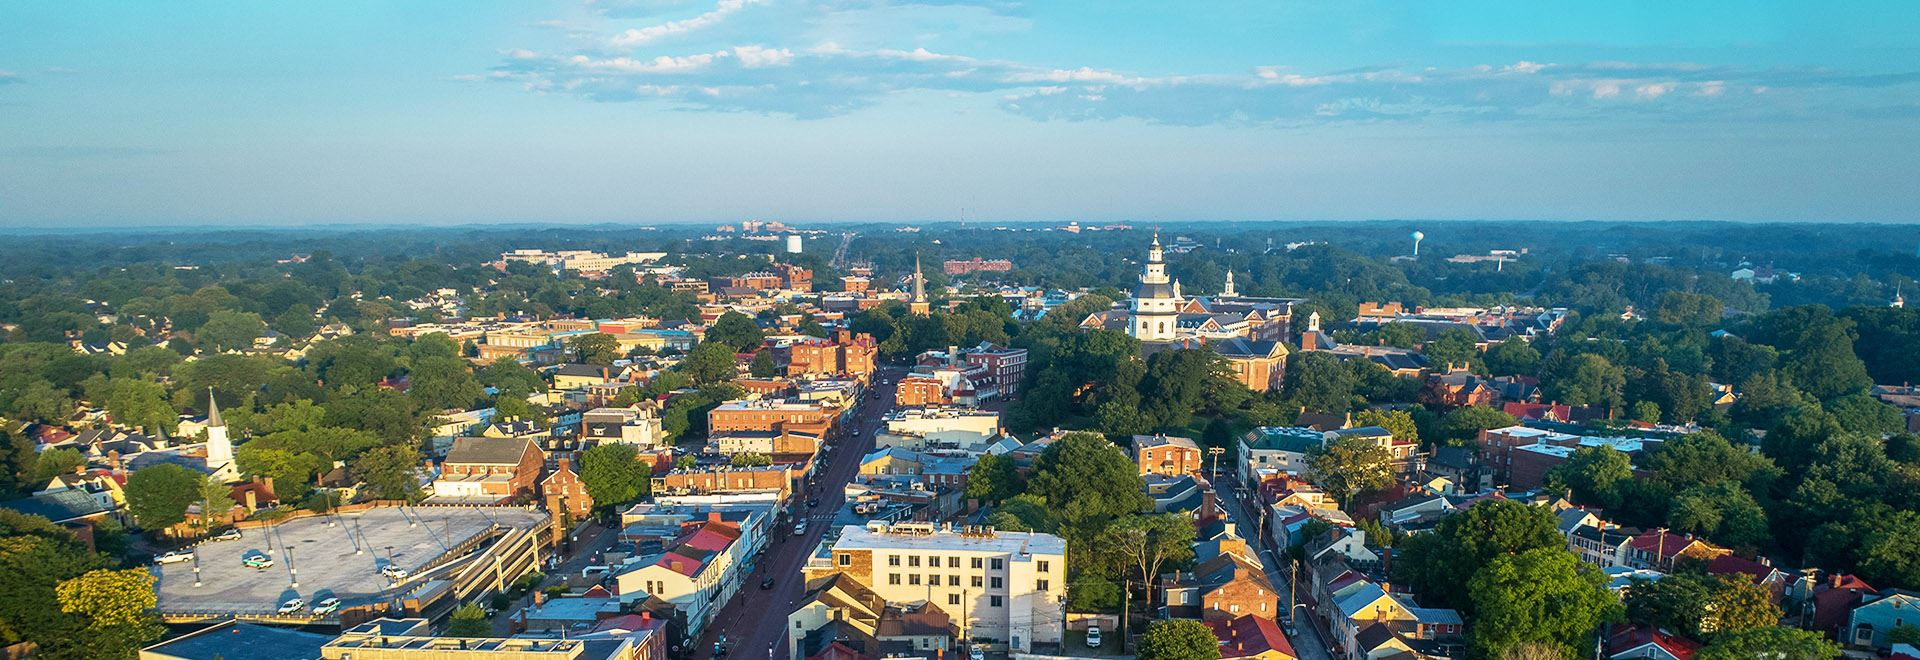 Annapolis, MD   Official Website